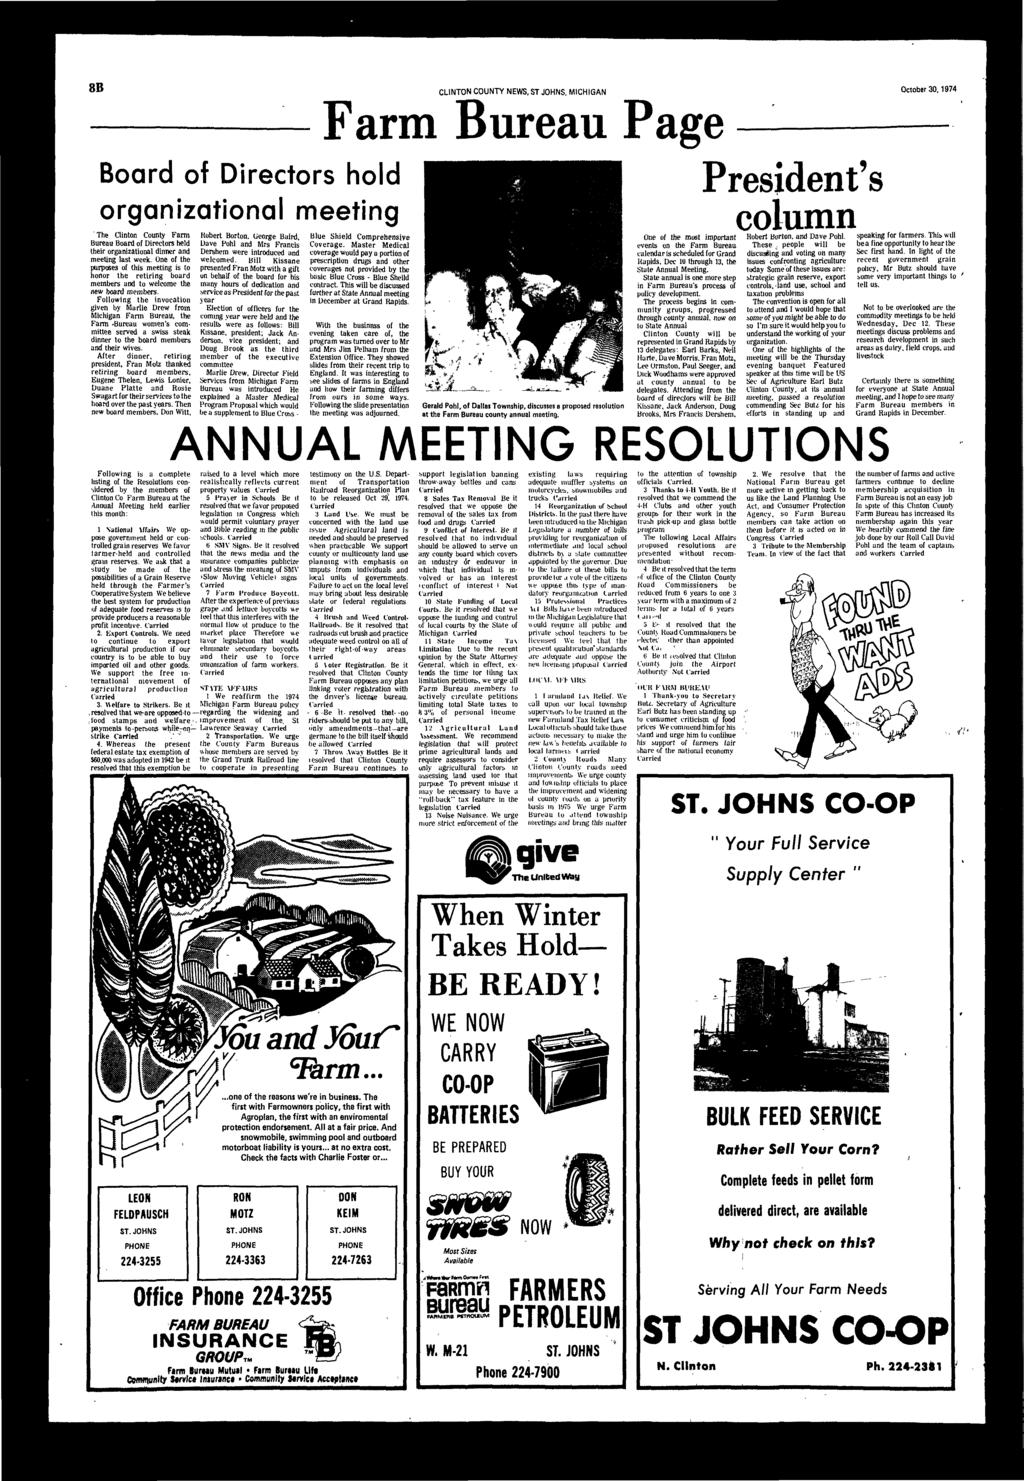 8B CLINTON COUNTY NEWS, ST JOHNS, MICHIGAN October 30,1974 Frm Bureu Pge Bord of irectors hold orgniztionl meeting The Clinton County Frm Bureu Bord of irectors held their orgniztionl dinner meeting